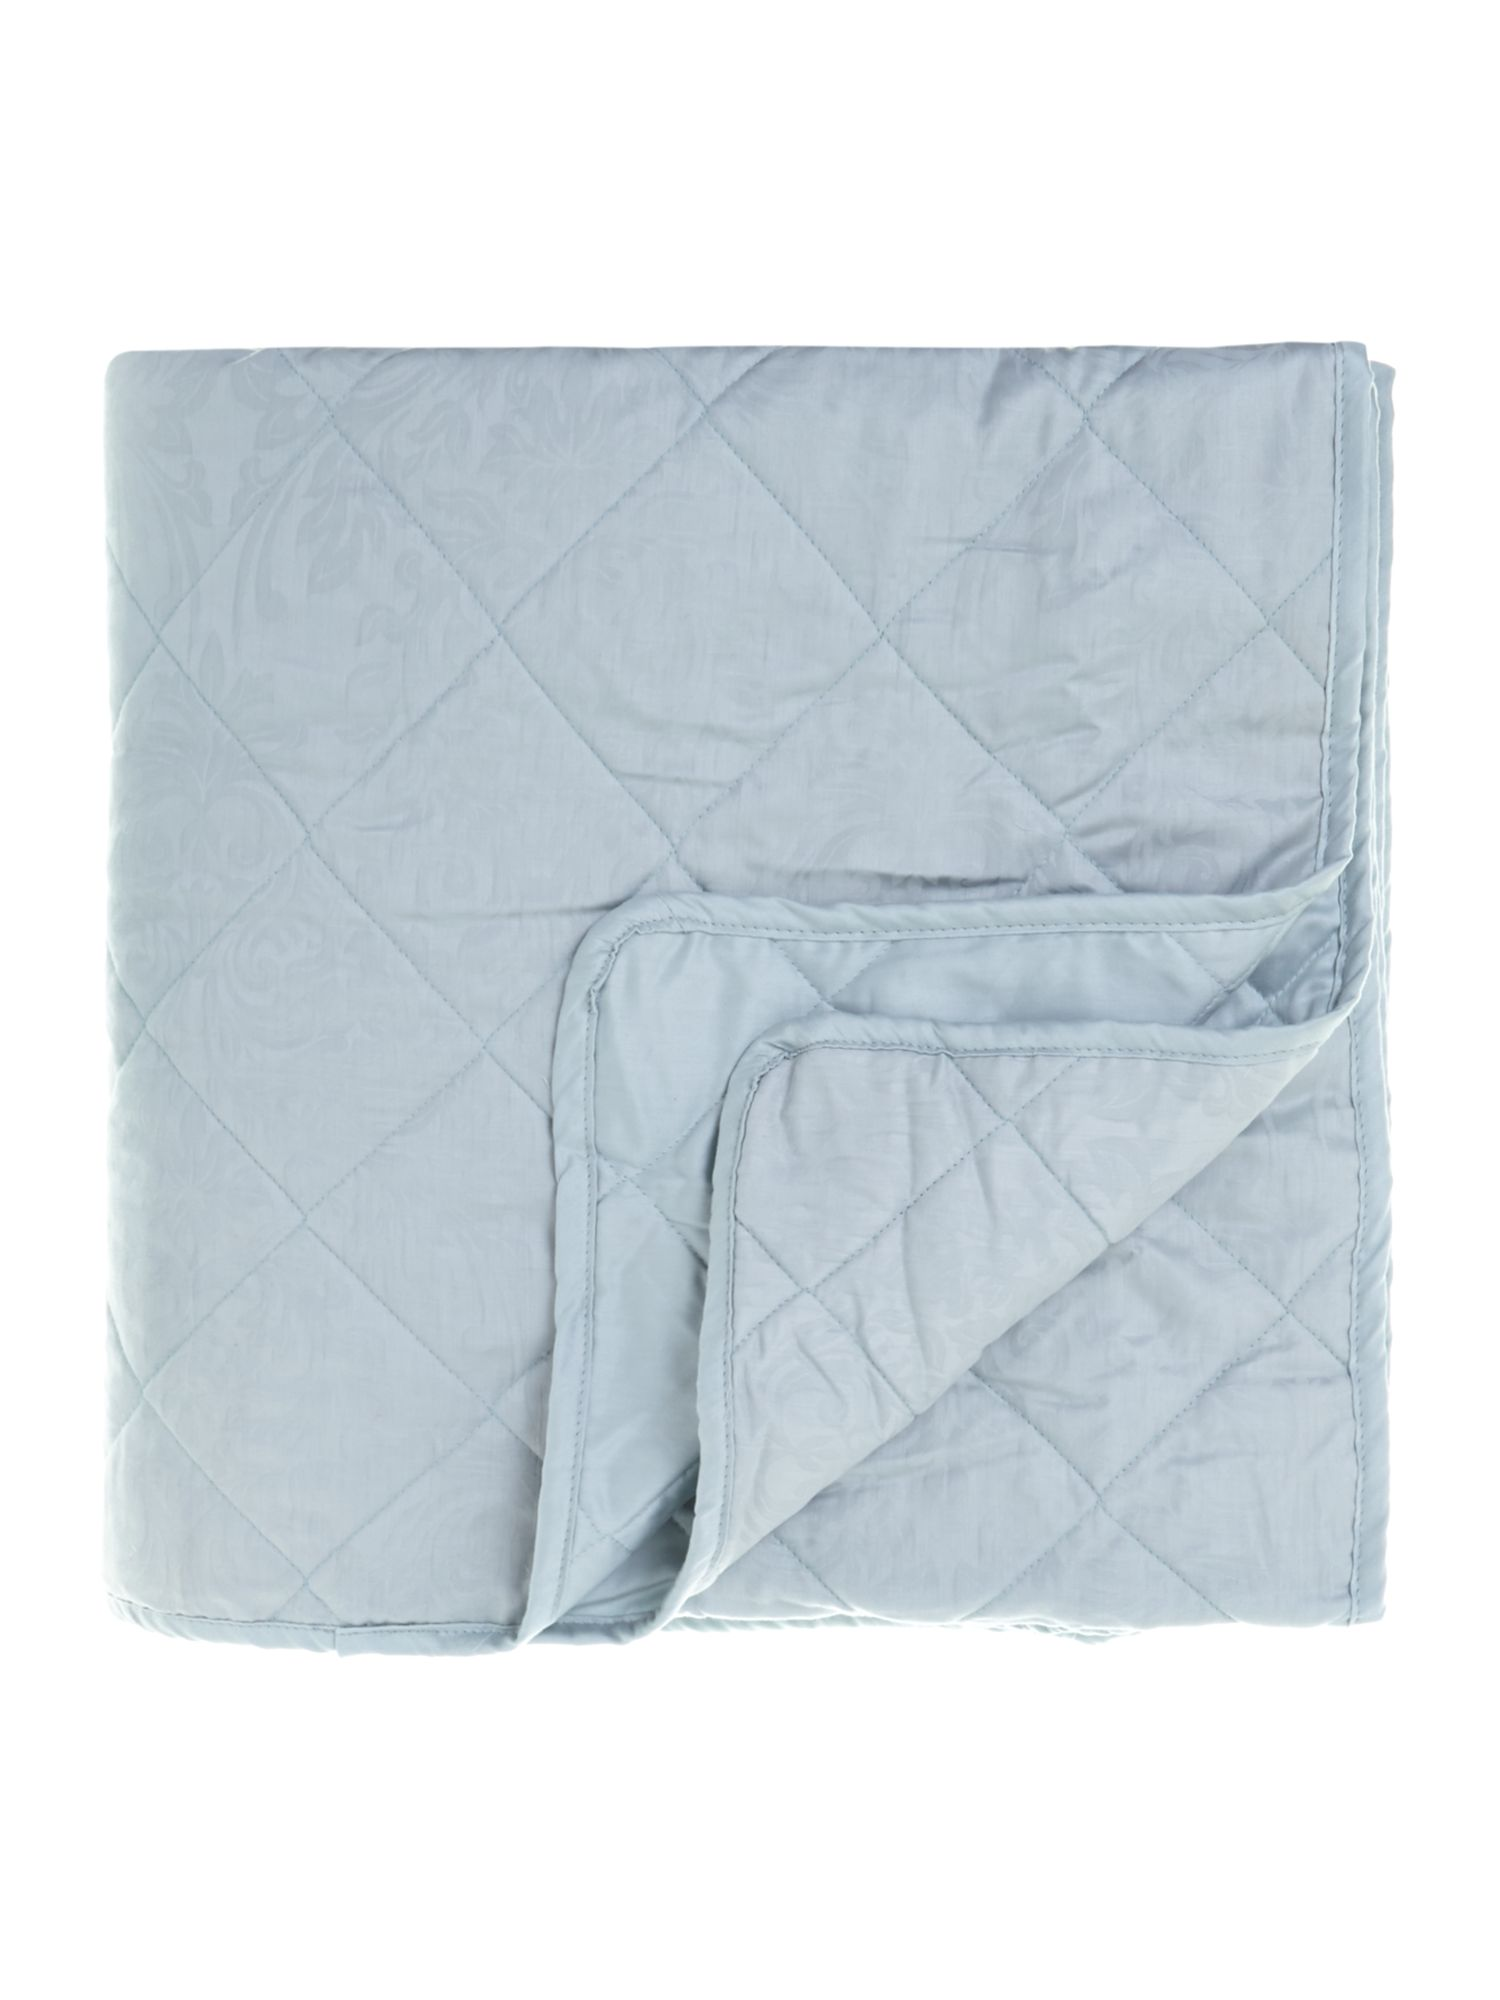 Lhc damask quilted bedspread soft blue